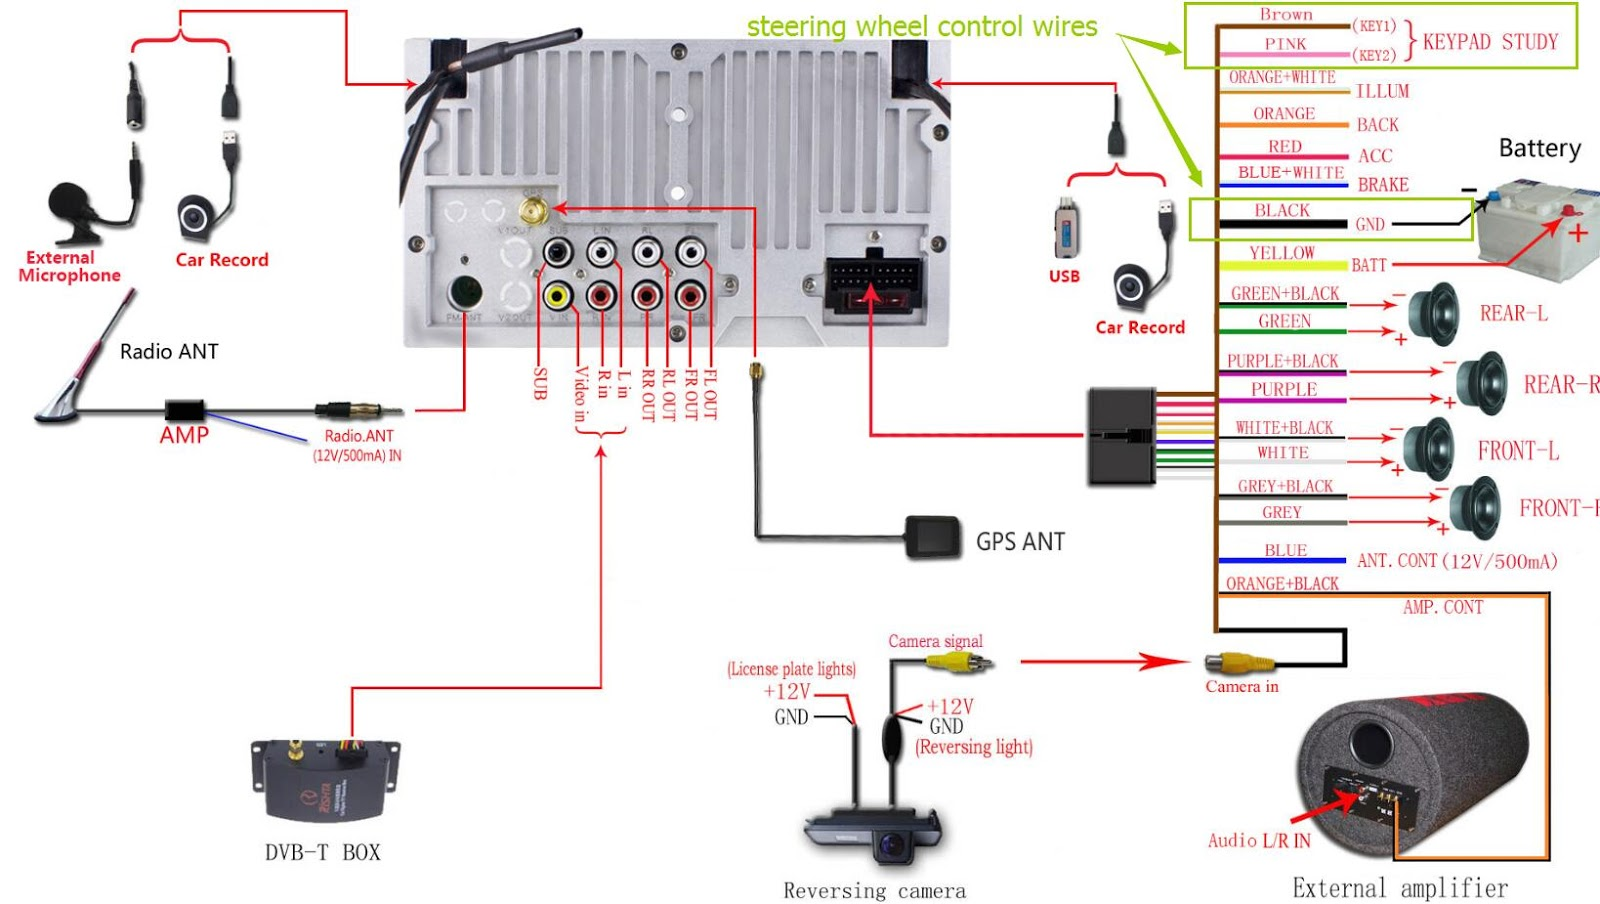 hight resolution of if there are two factory swc wires on your car one connects to key1 or